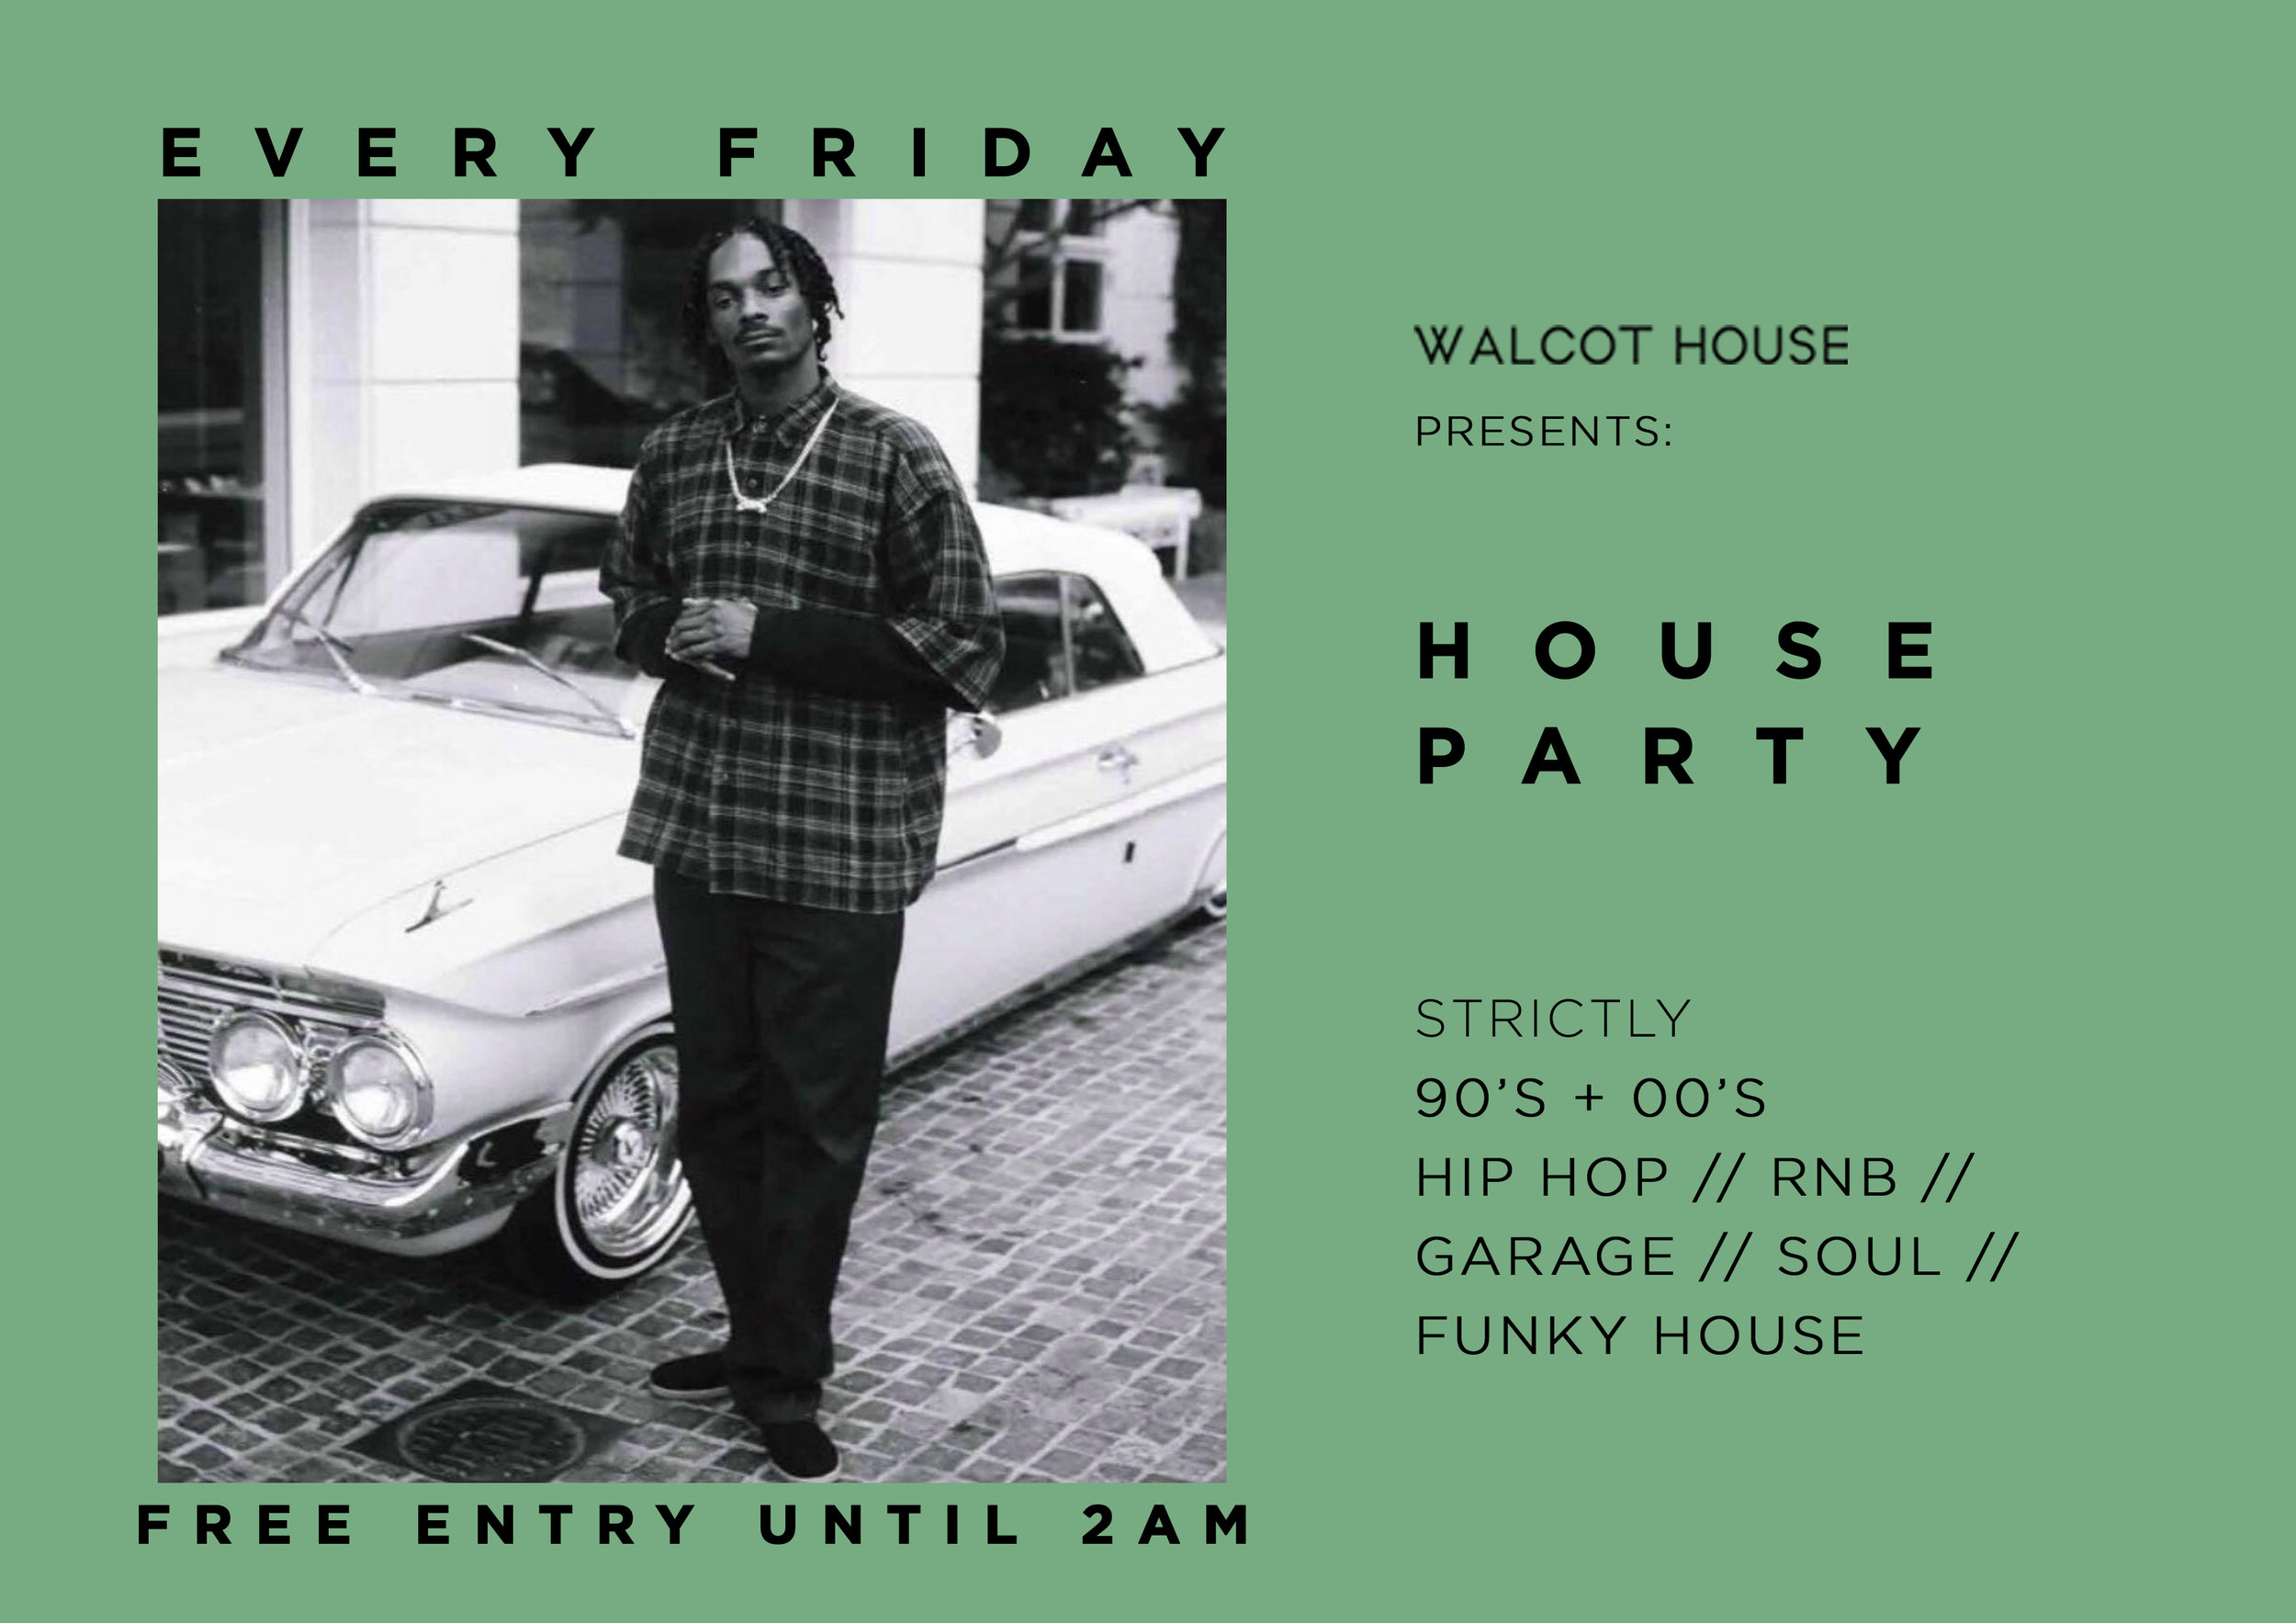 HOUSE PARTY FLYER snoop.jpg